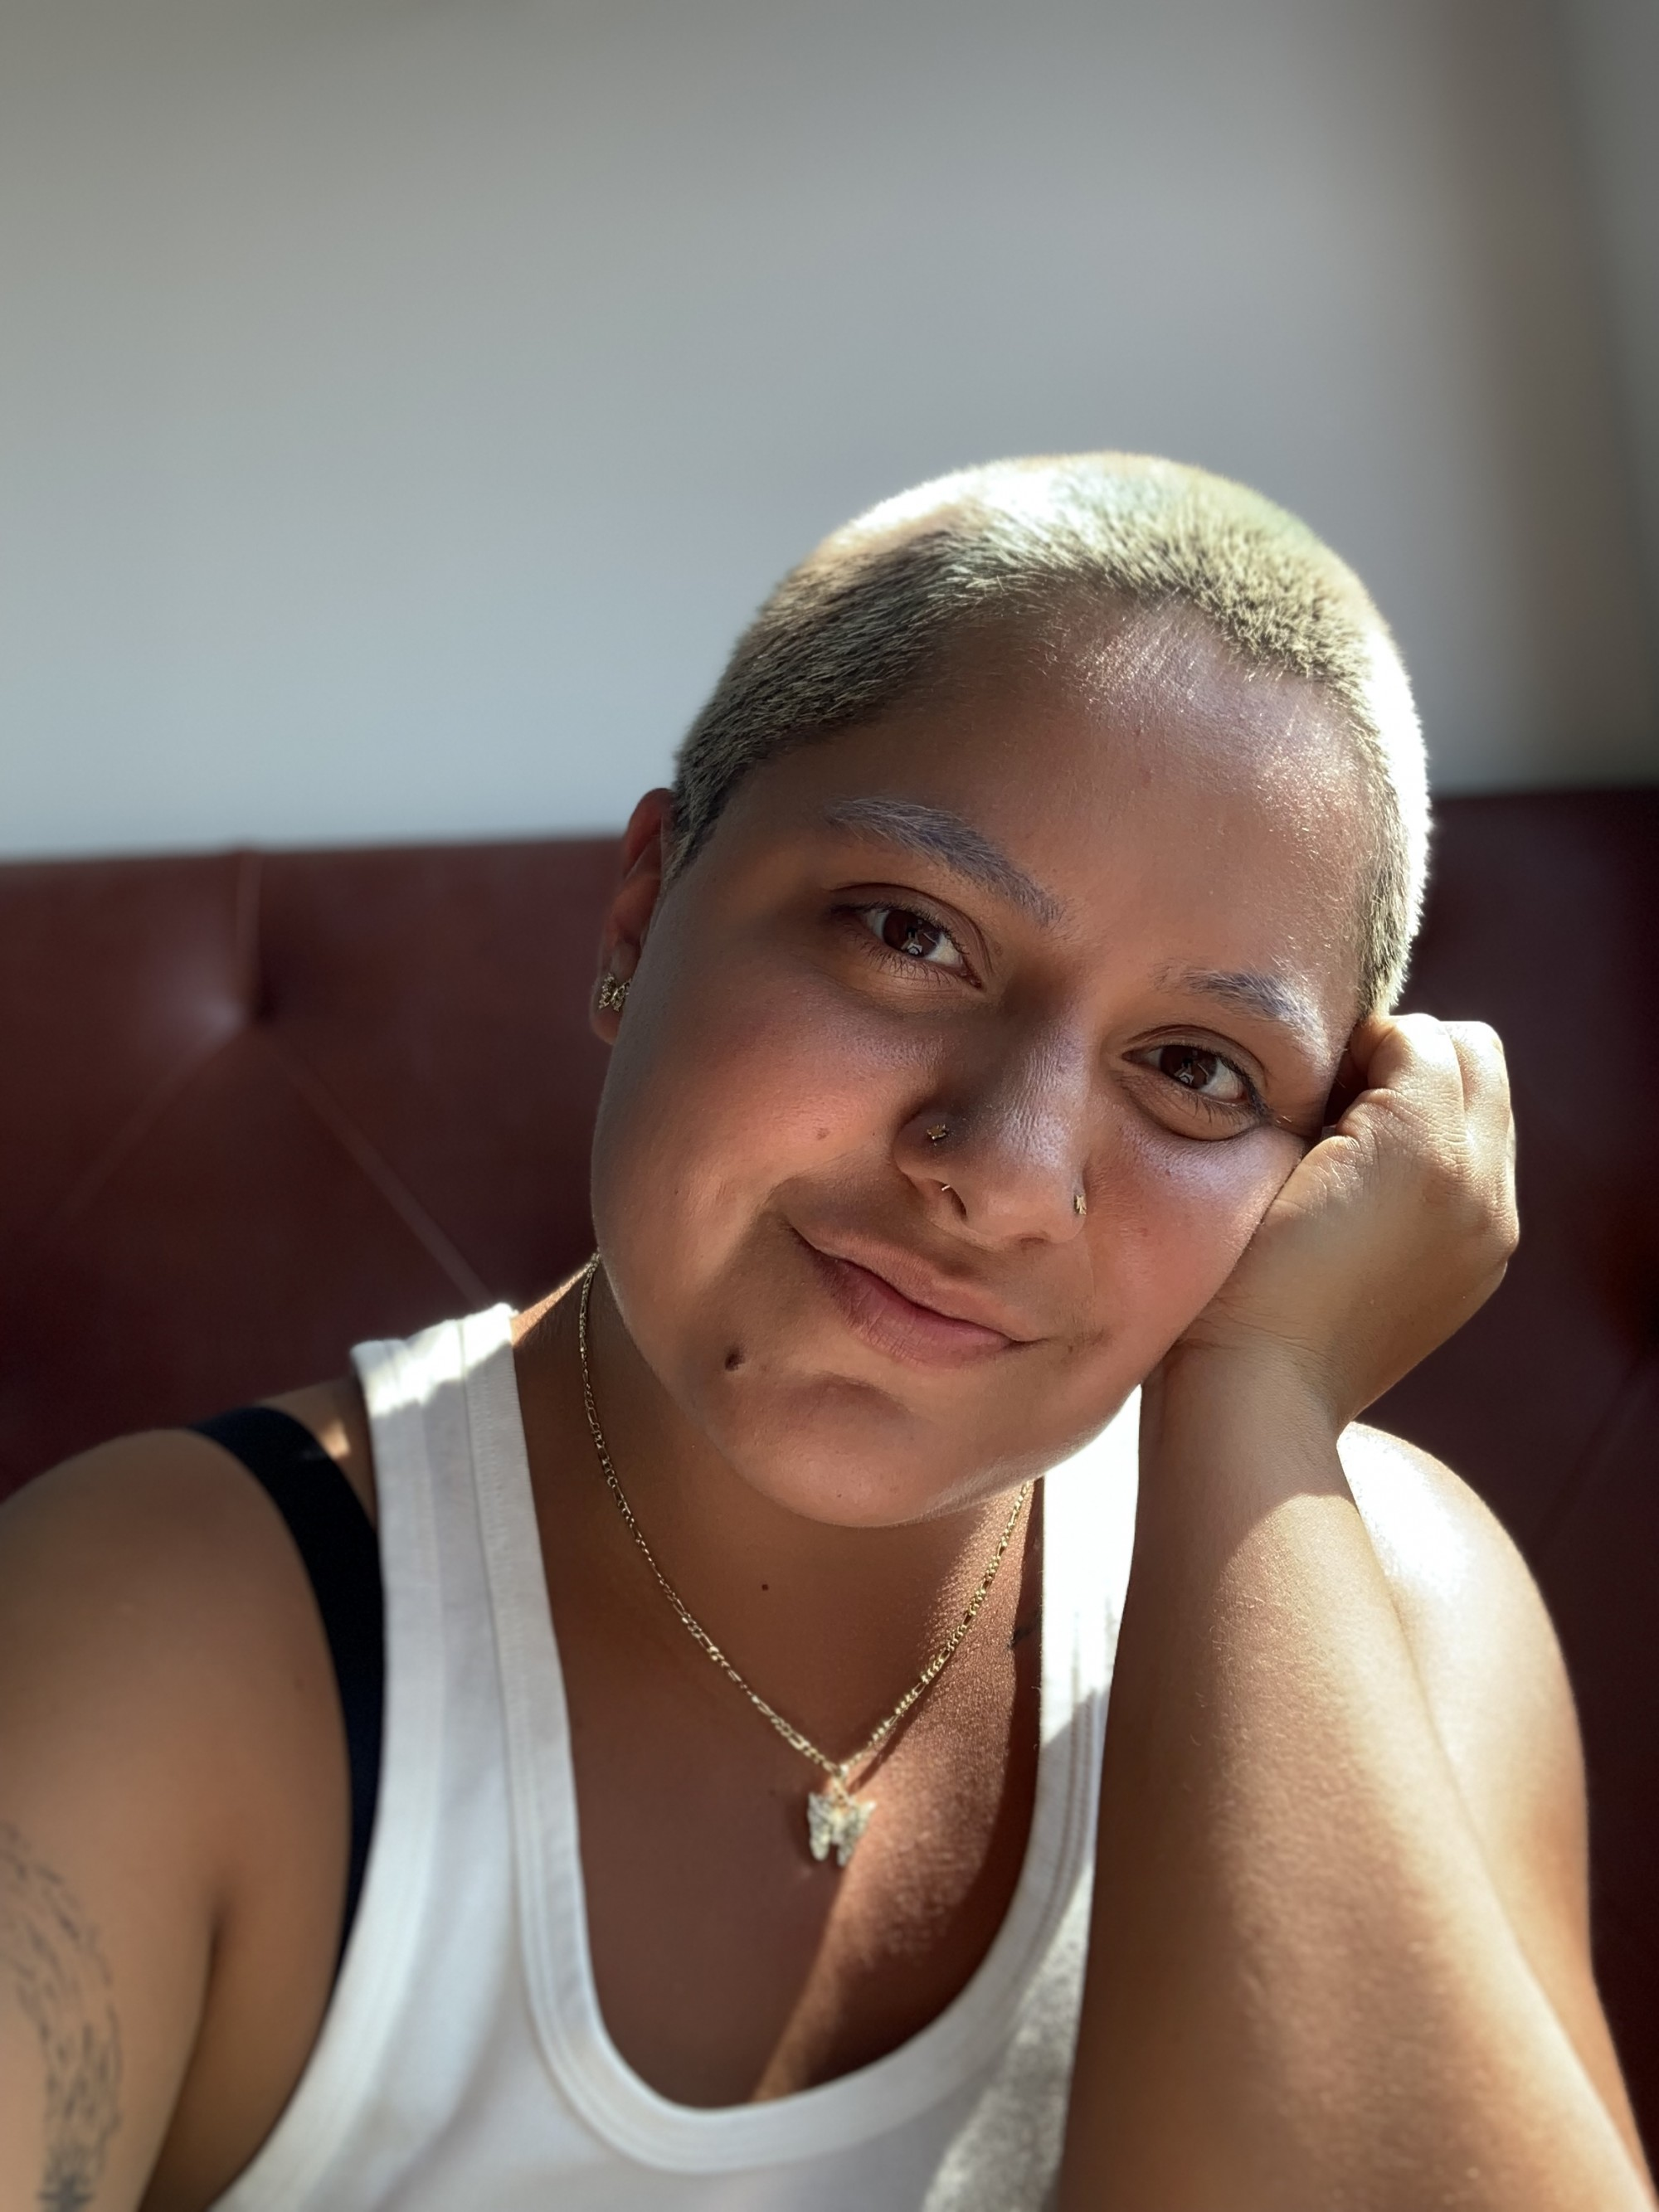 xime izquierdo ugaz faces the camera, smiling, with their head resting on their palm, wearing a white tank top, with light shining in from the side.